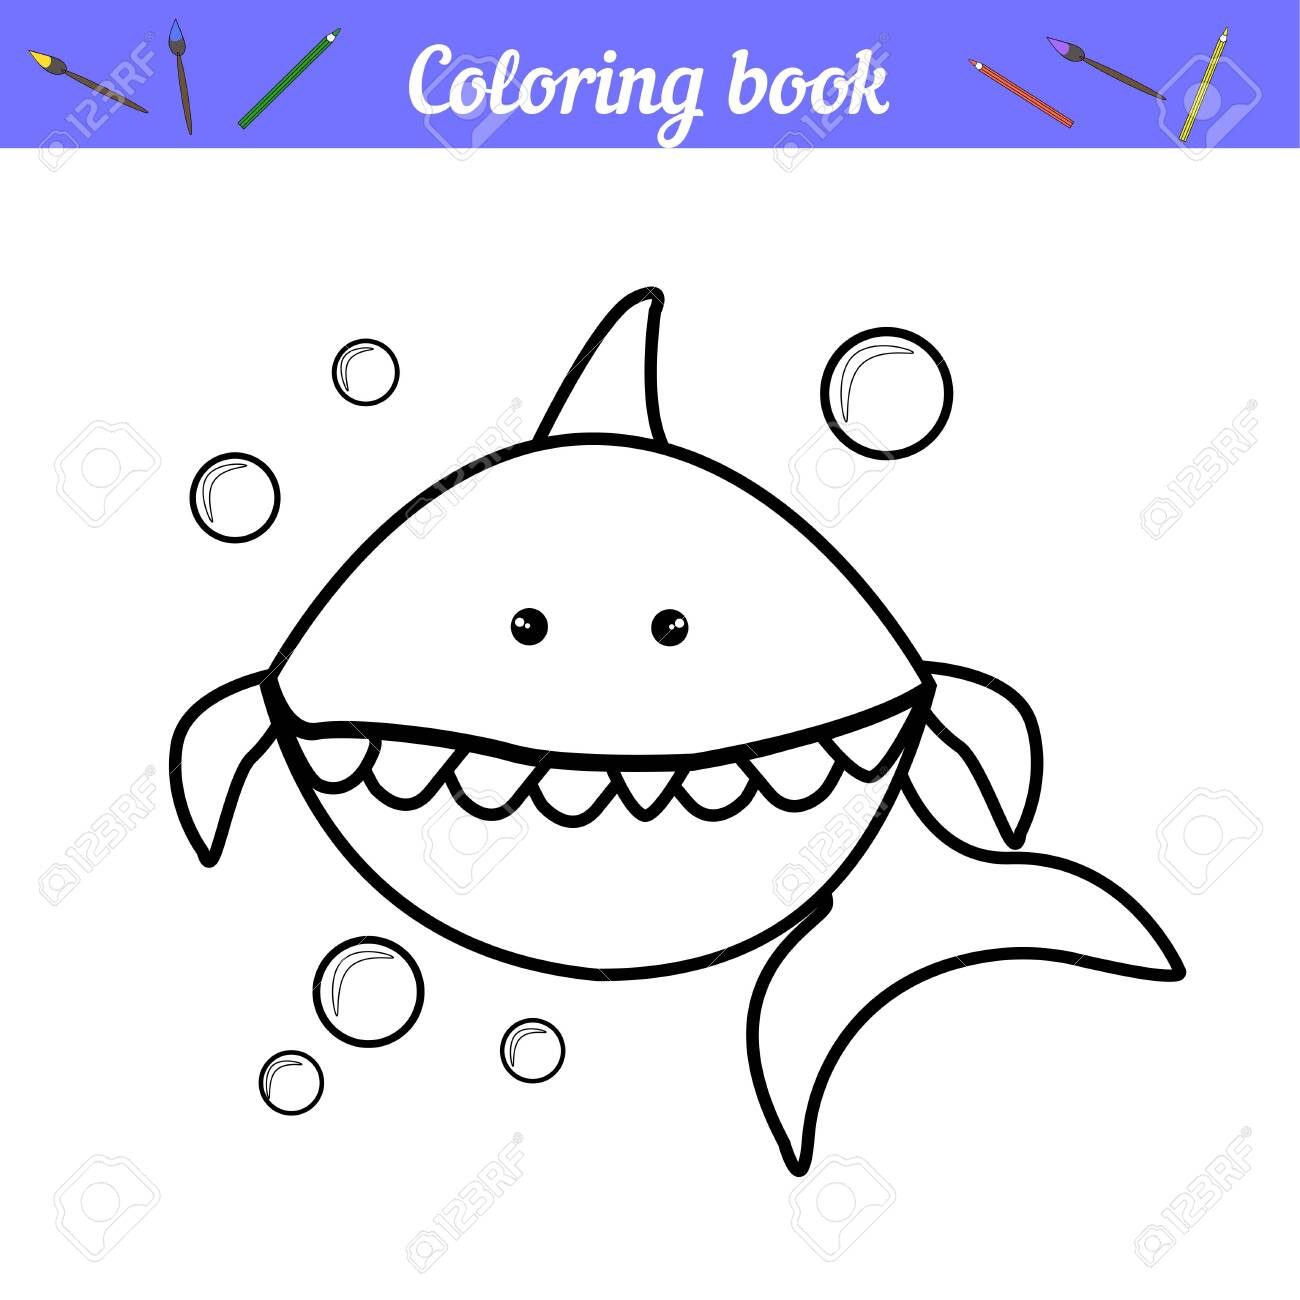 Baby Shark And Bubbles Page For Coloring Simple Coloring For Royalty Free Cliparts Vectors And Stock Illustration Image 131902255